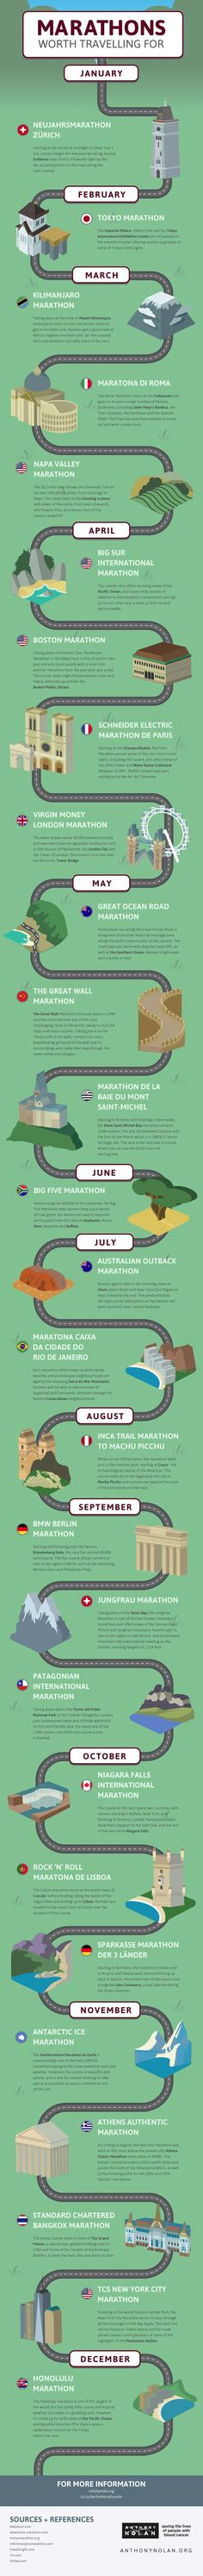 Thank you to Anthony Nolan for sharing this infographic with us! We hope all those running in support of your organization enjoy a year of beautiful runs and pe